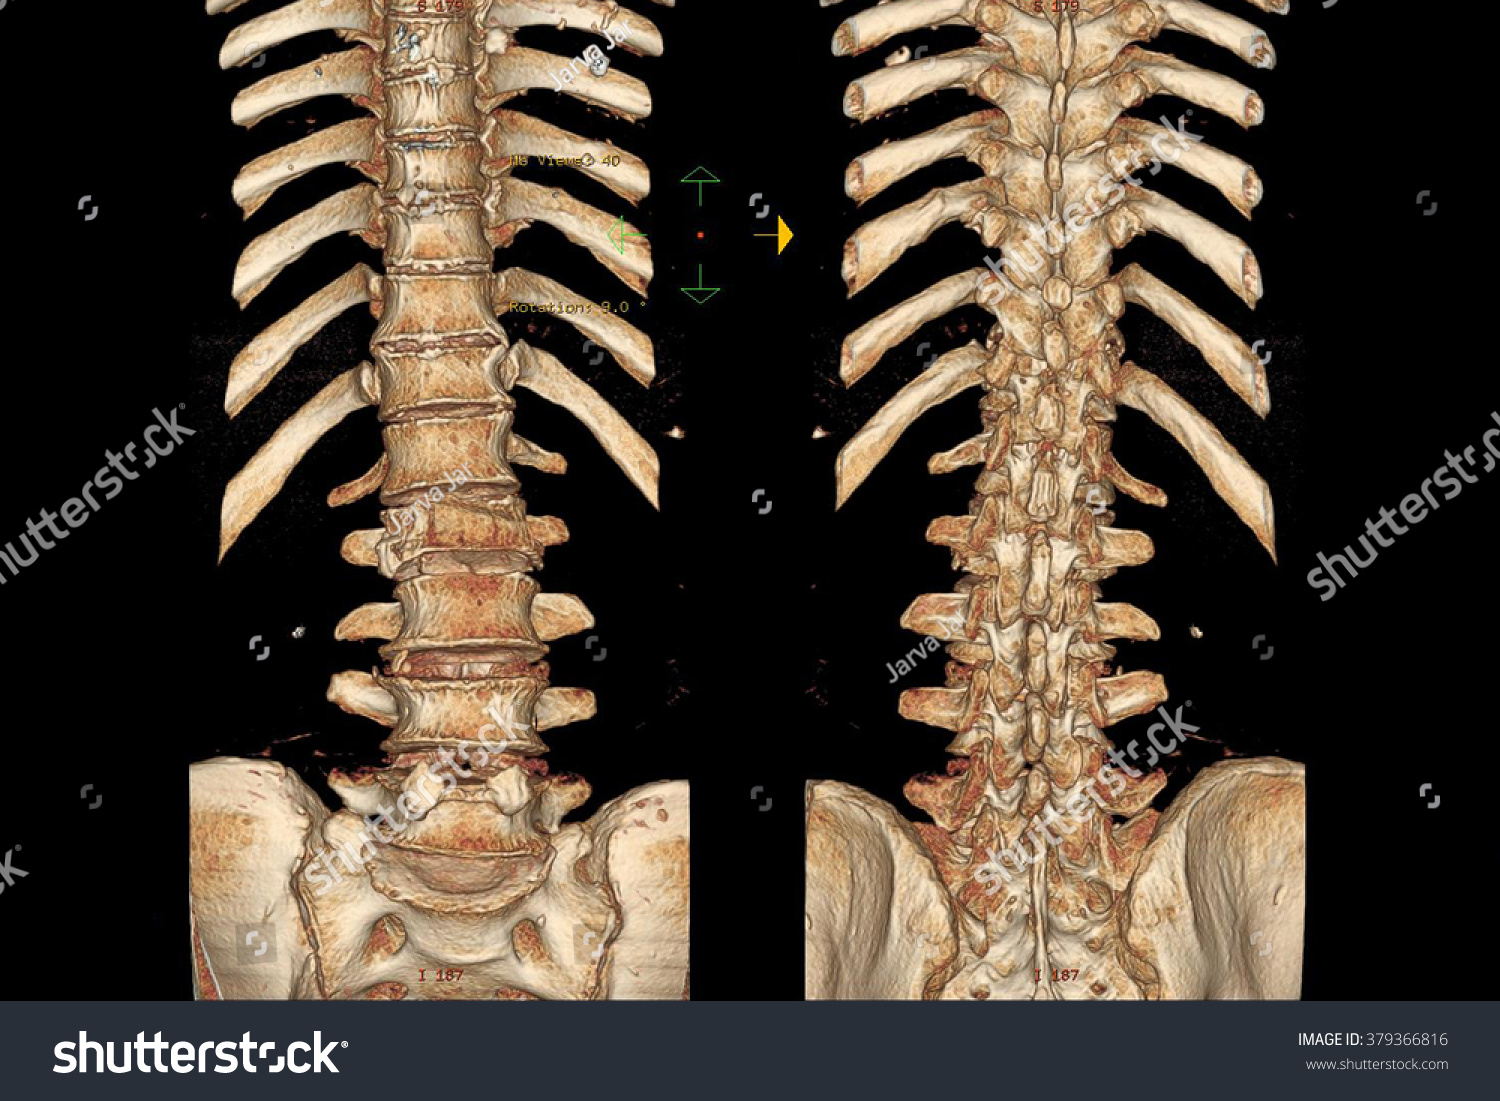 C Tscan Lumbar Spine Pelvis Inflammation Spine Stock Photo (Edit Now ...